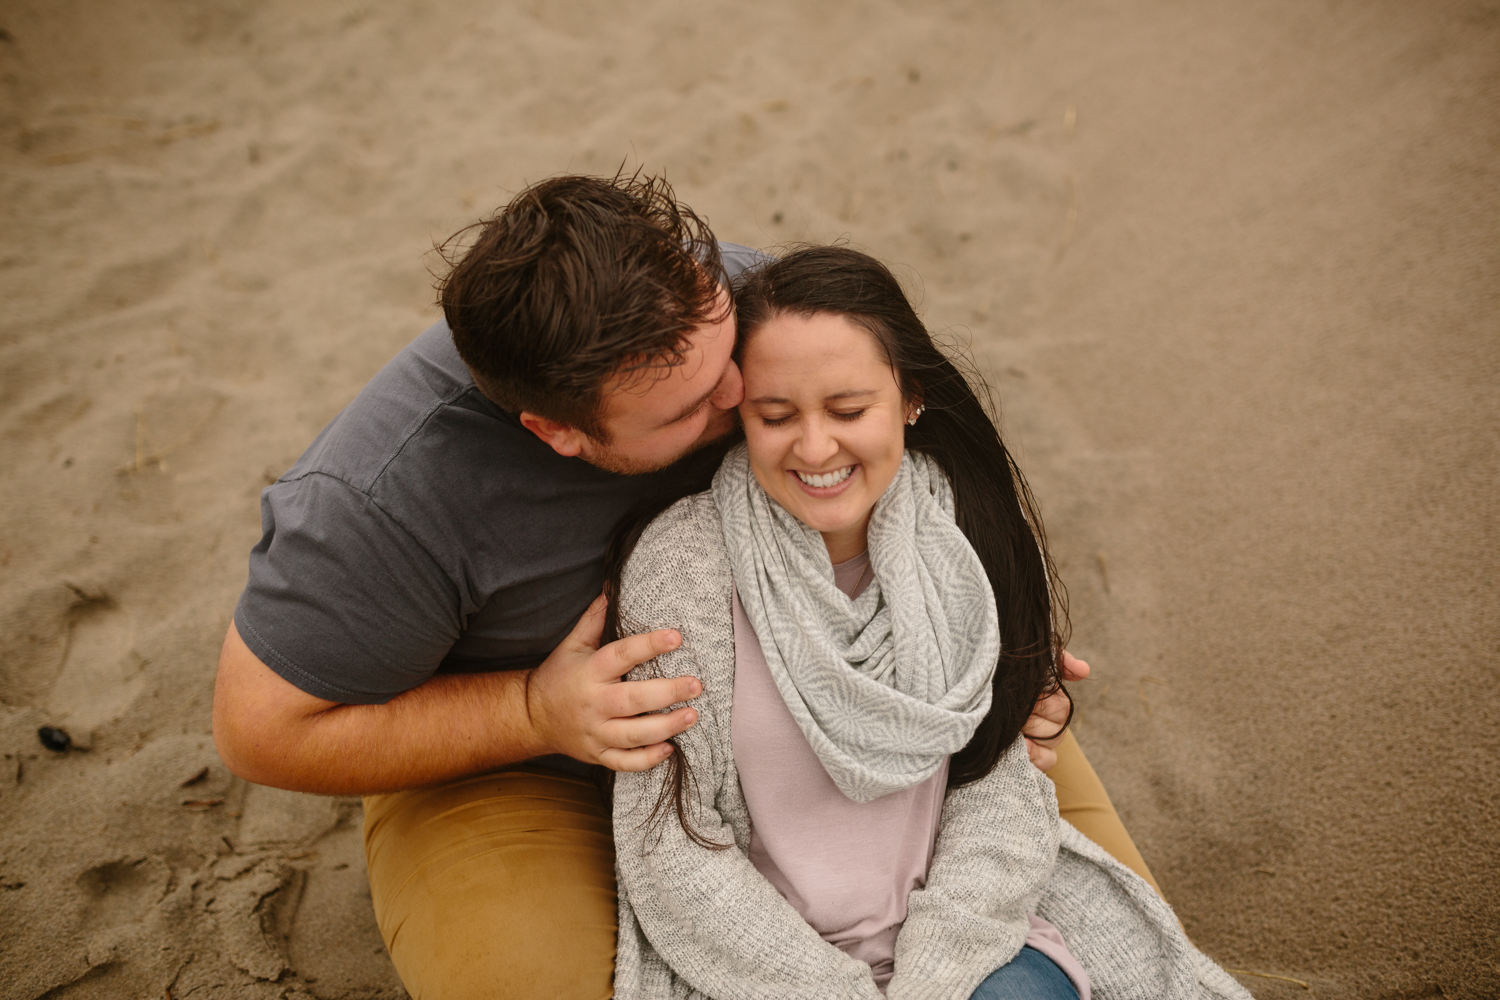 A happy couple cuddling on the sand